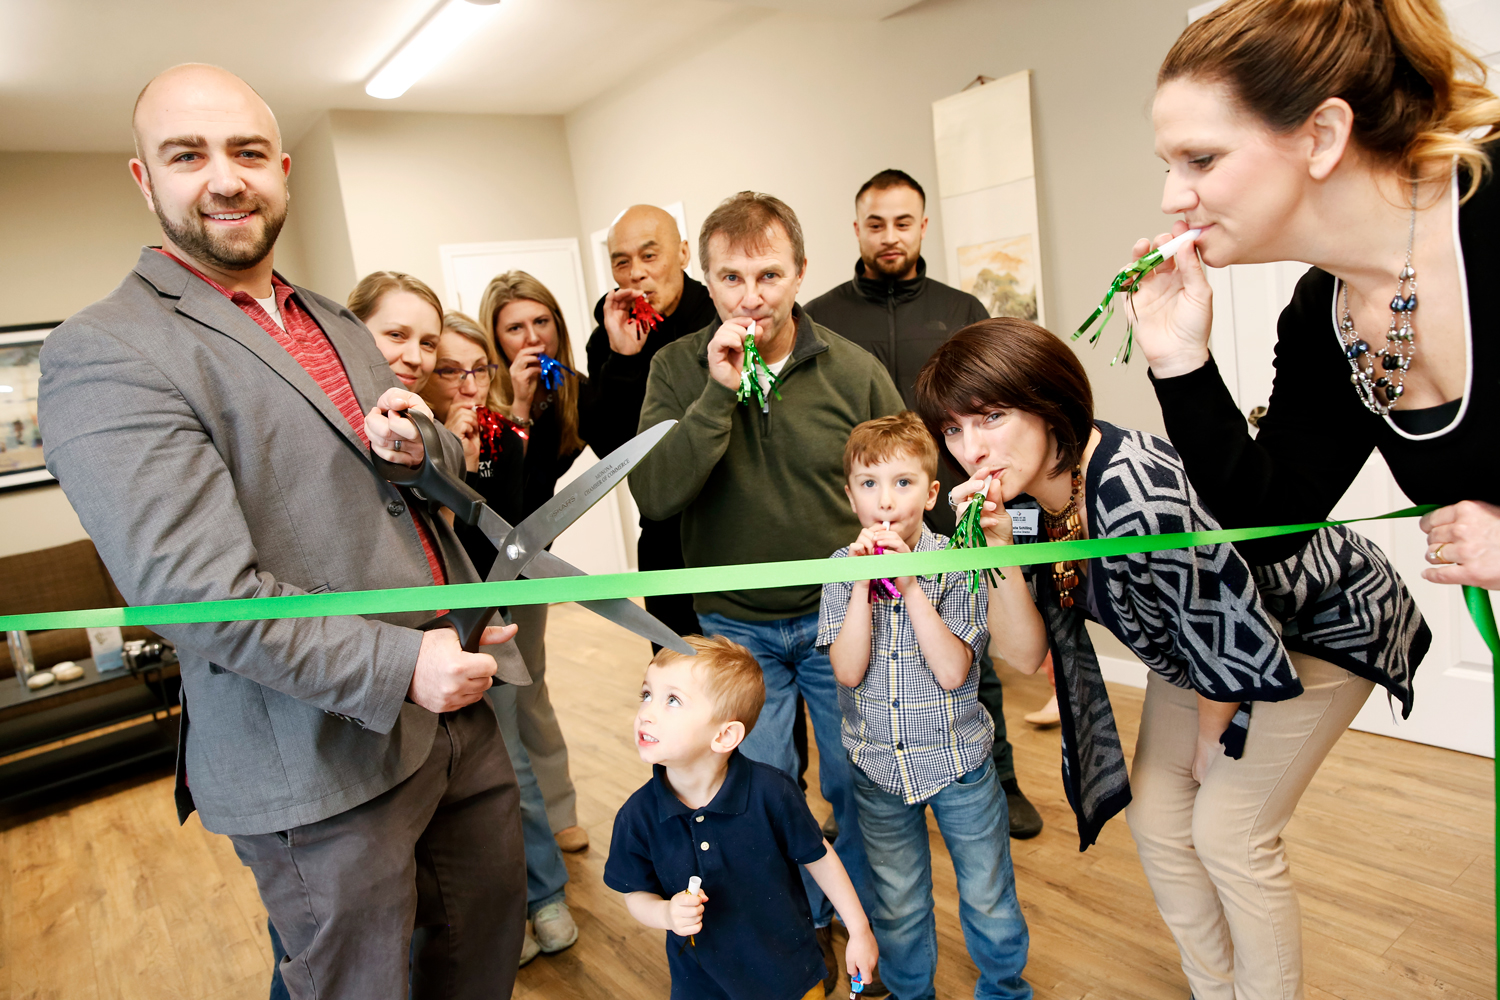 madison-hypnosis-center-ribbon-cutting-event-photography-wi-dane-county-ruthie-hauge-photographer.jpg